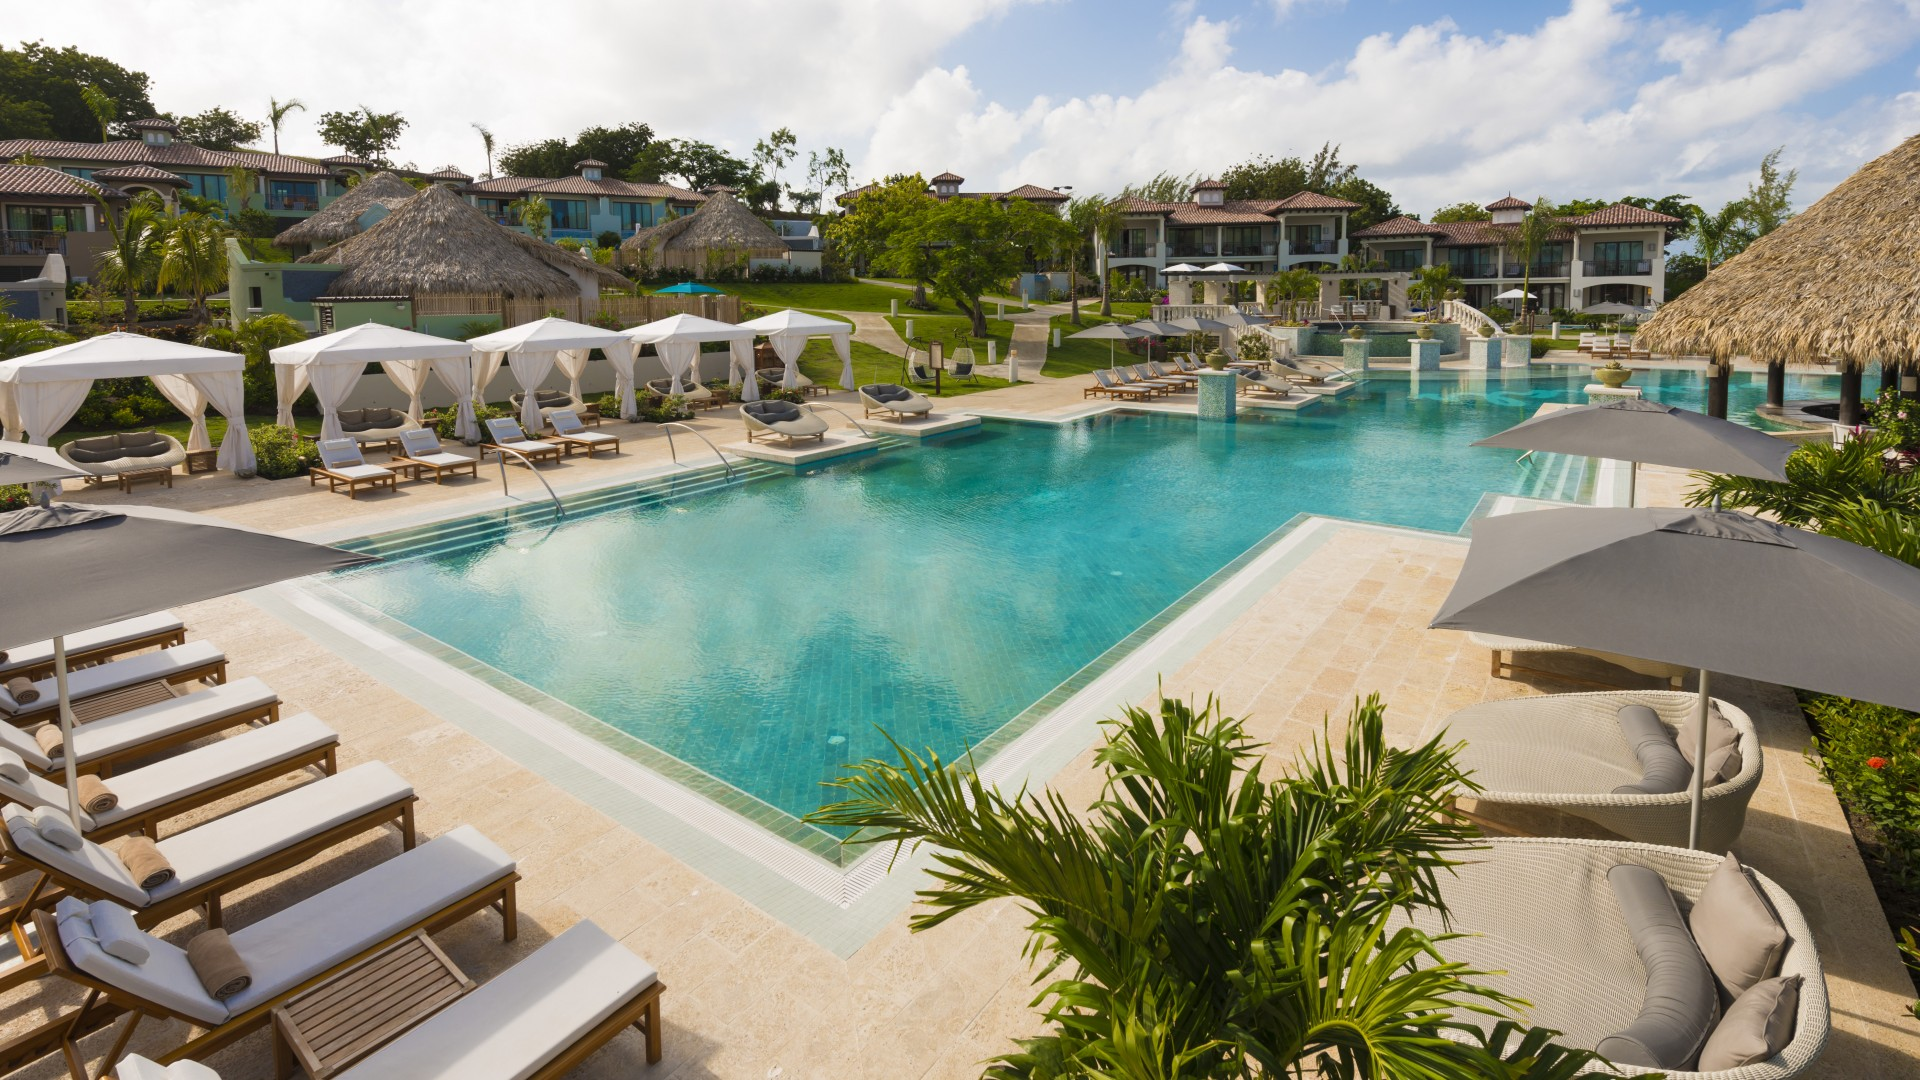 A pool at Sandals Grenada Resort & Spa